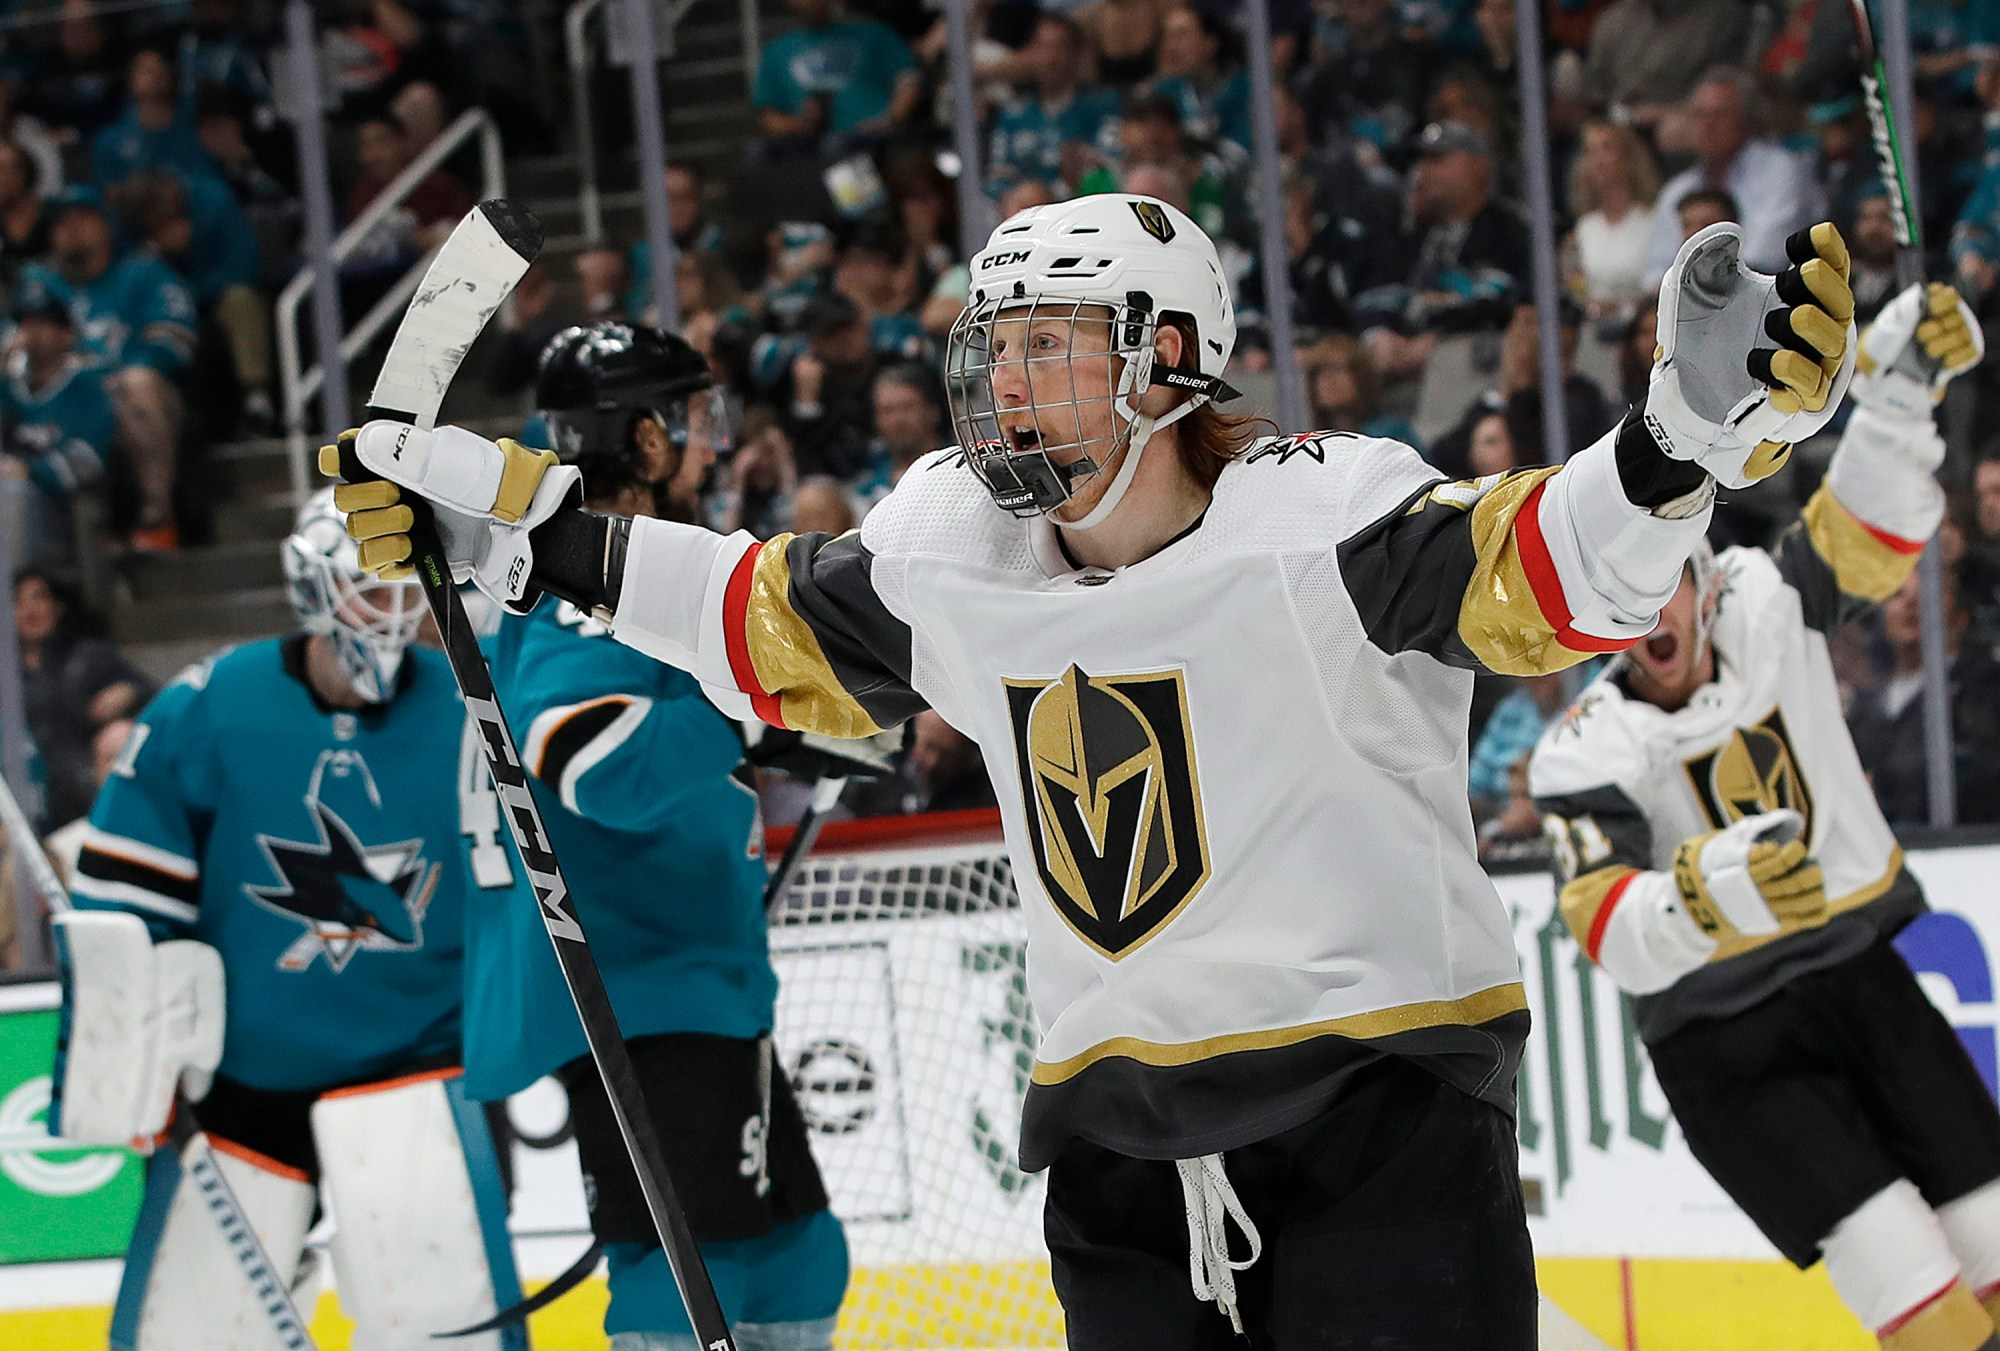 Golden_Knights_Sharks_Hockey_13647-159532.jpg99824592